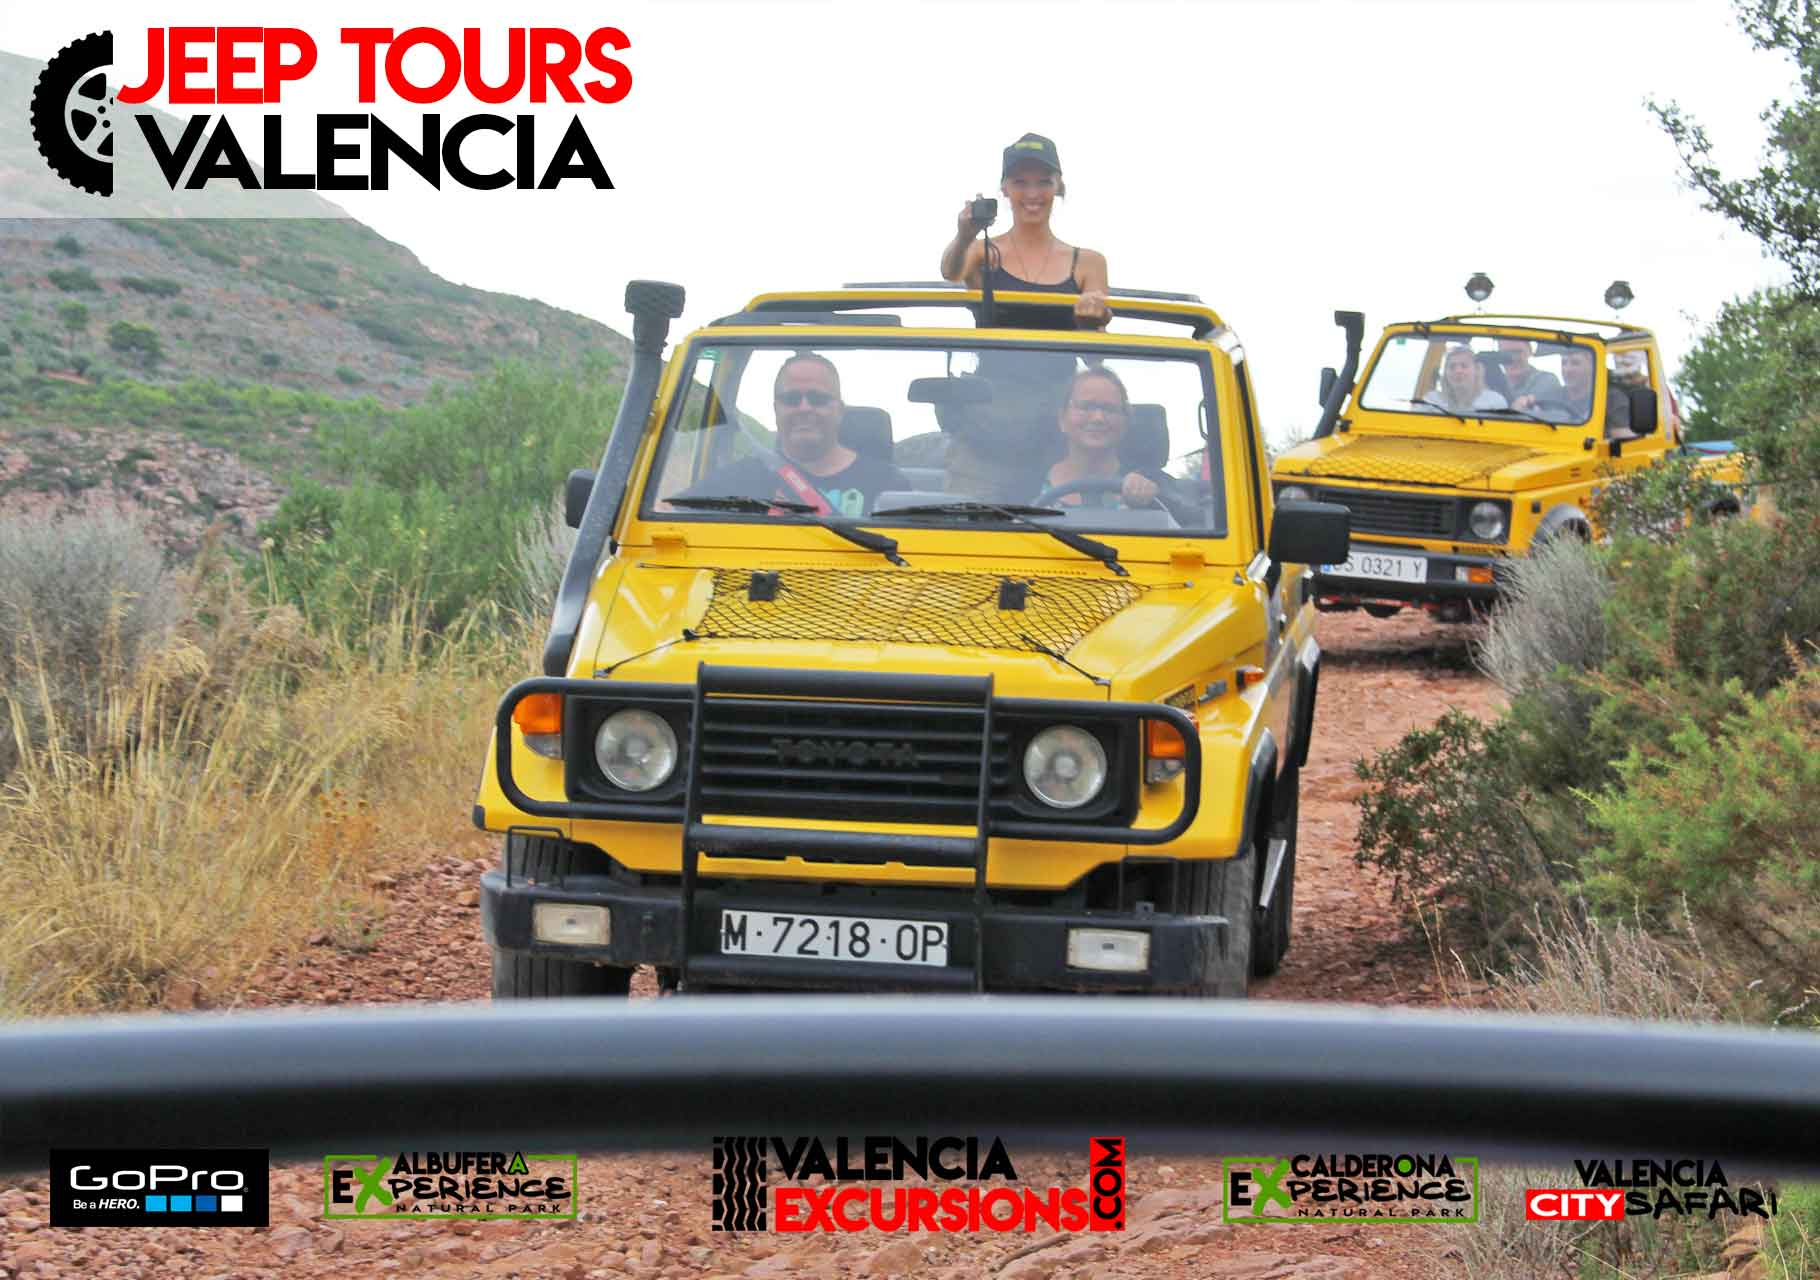 Valencia Jeep tours